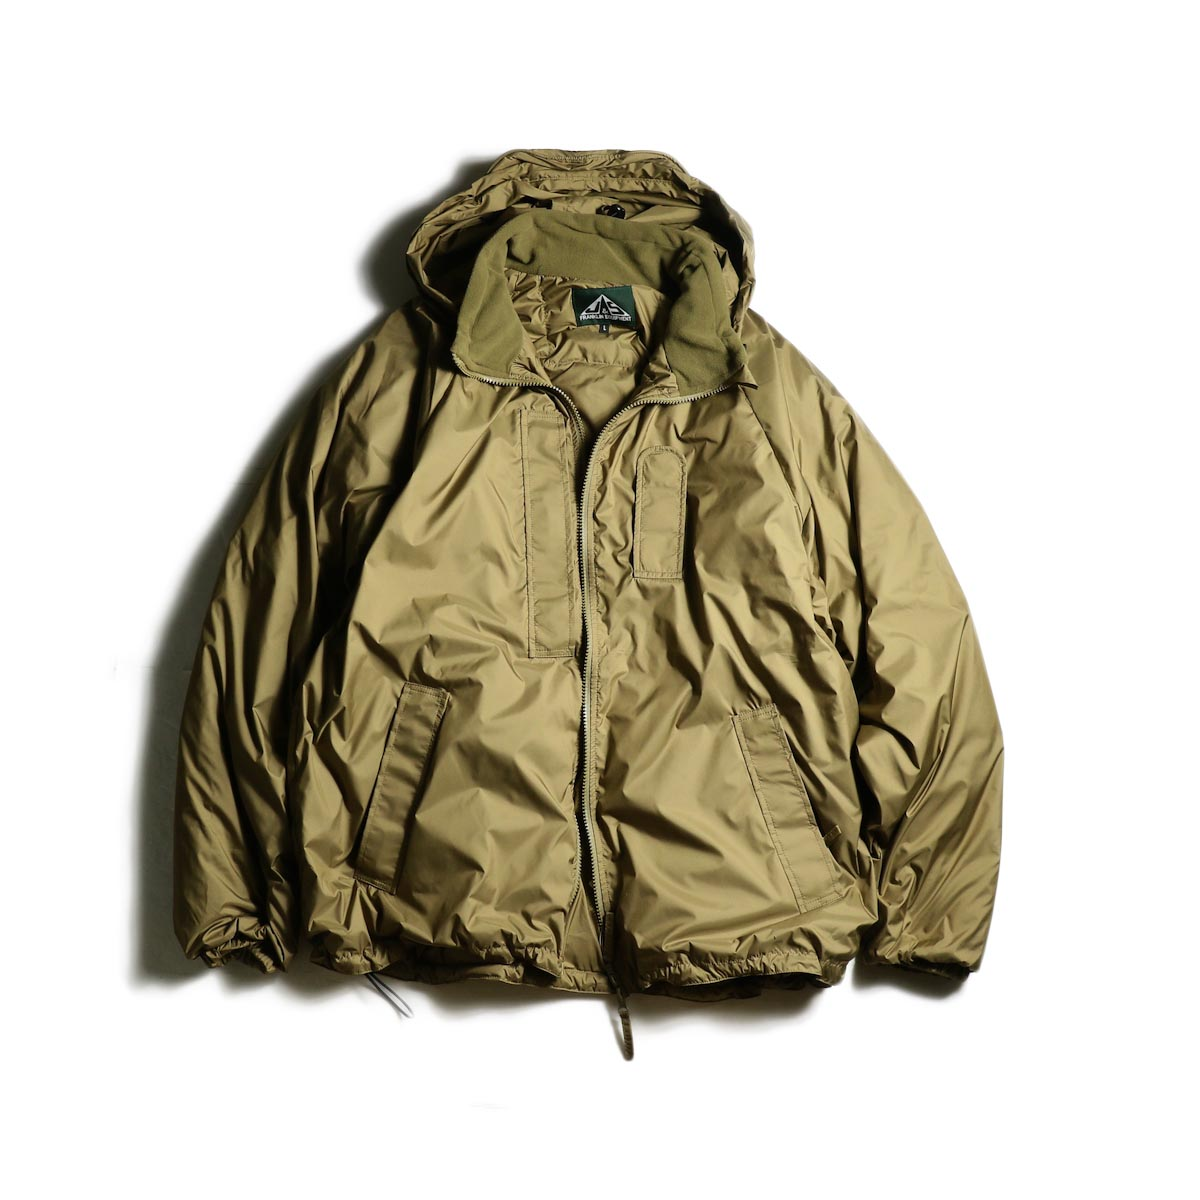 J&S Franklin / BRITISH ARMY PCS LIGHT WEIGHT DOWN JACKET (Coyote)